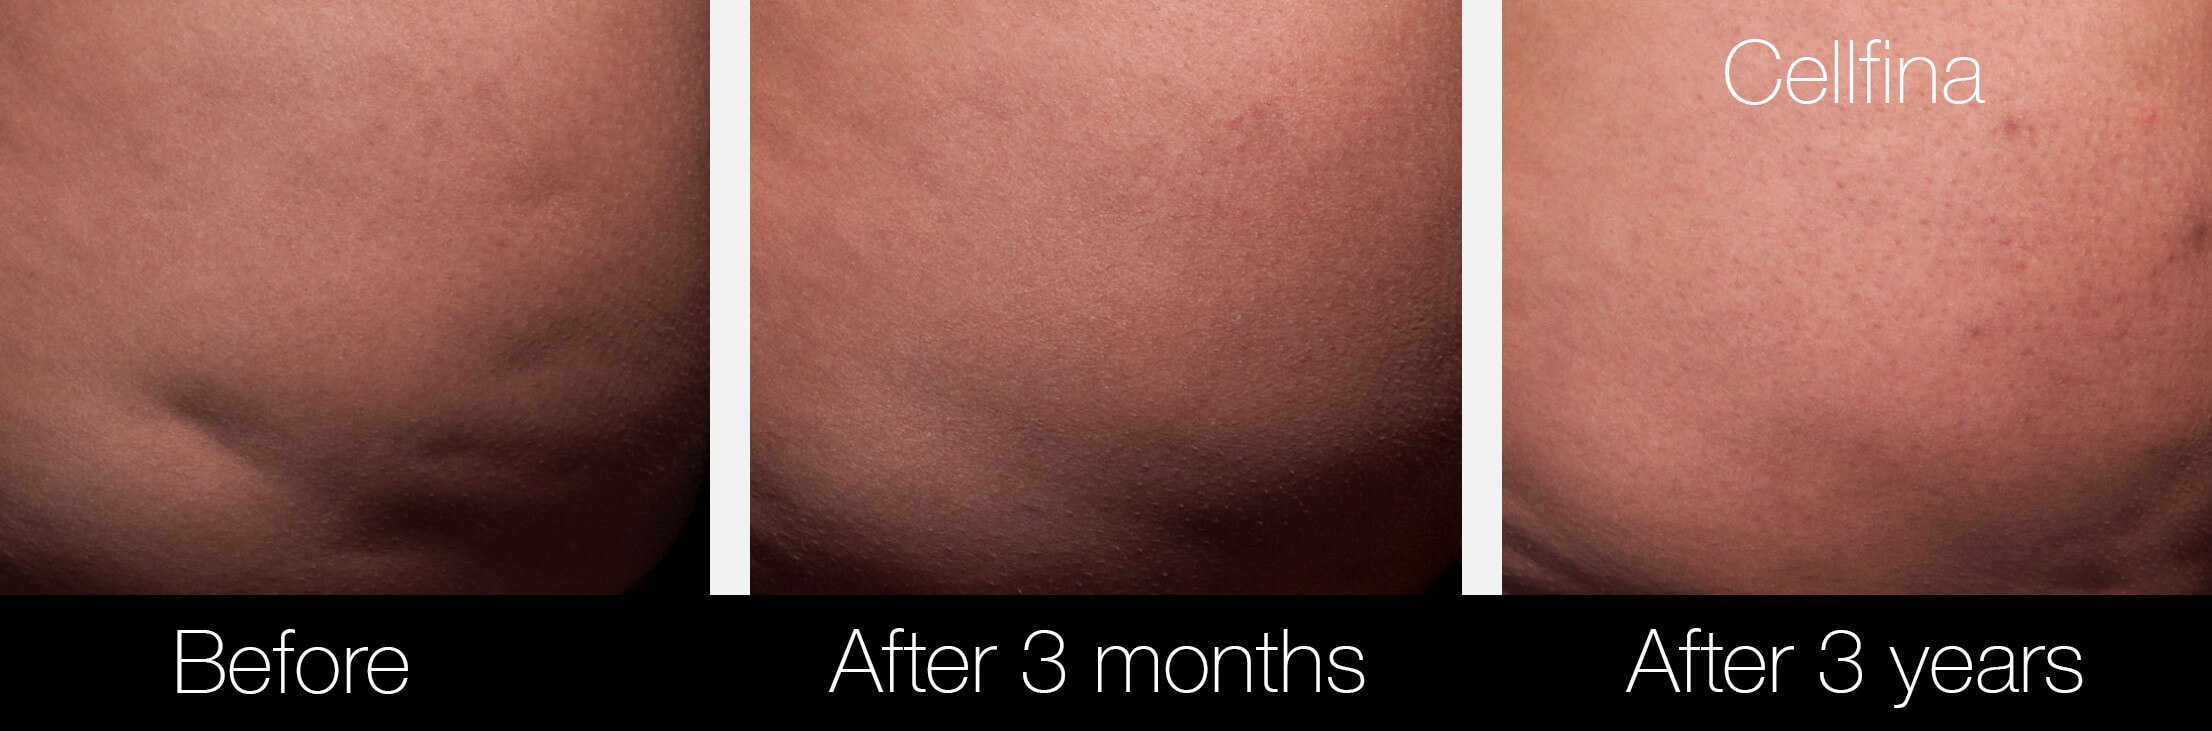 Cellfina Cellulite Treatment - Before and After Gallery – Photo 9